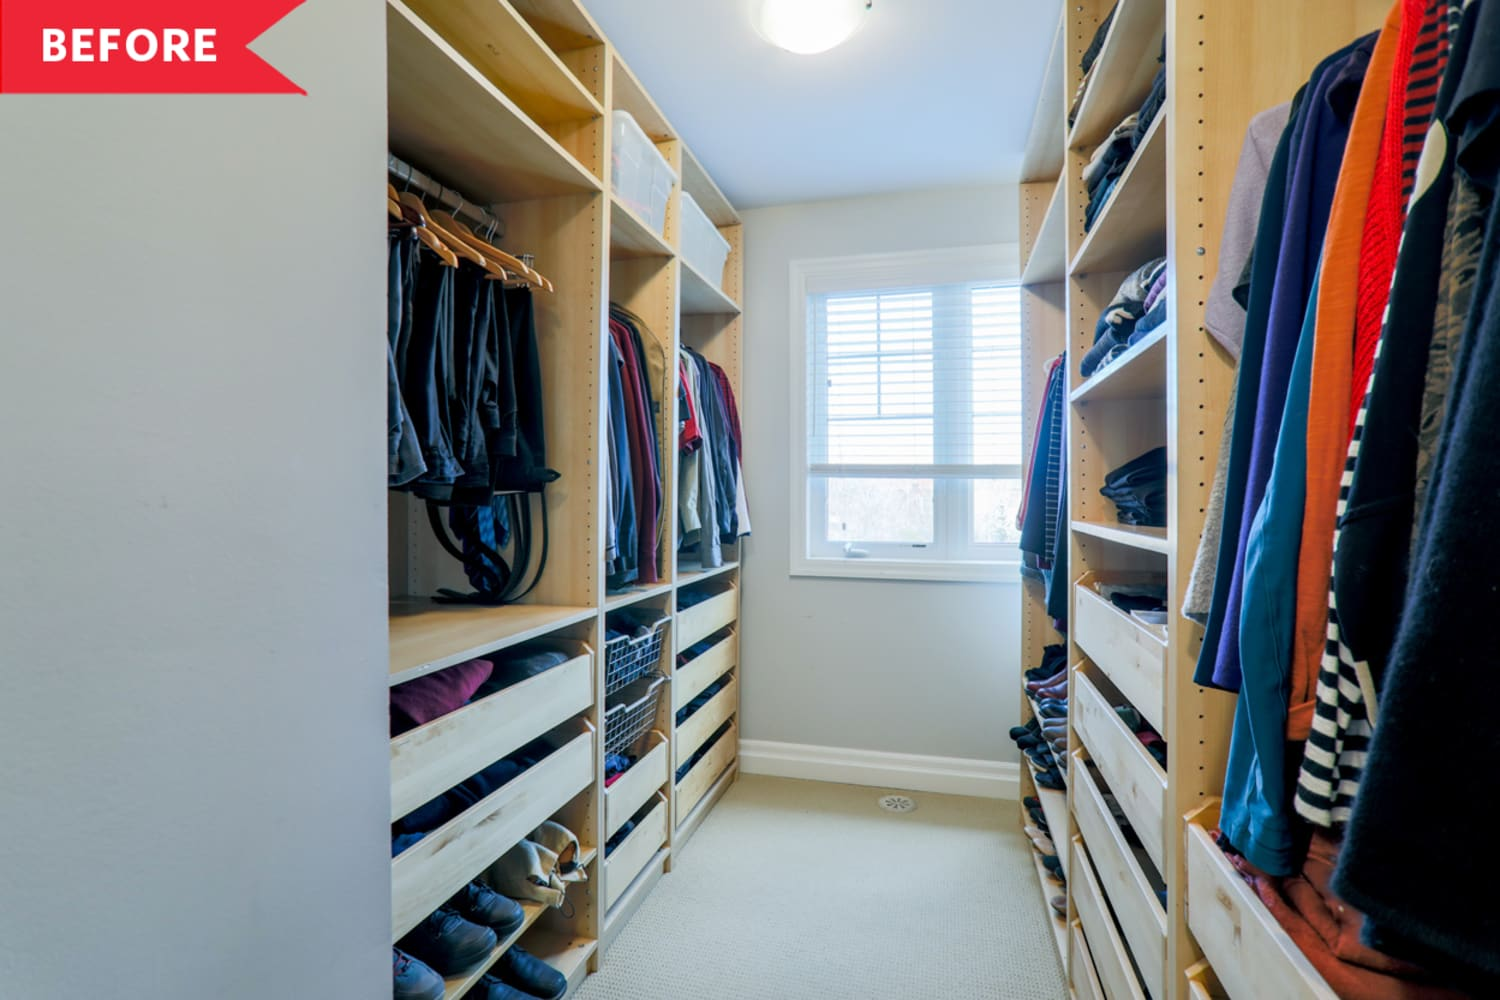 Before and After: A Dark Walk-In Closet Becomes a Dreamy Home Office for $3,000